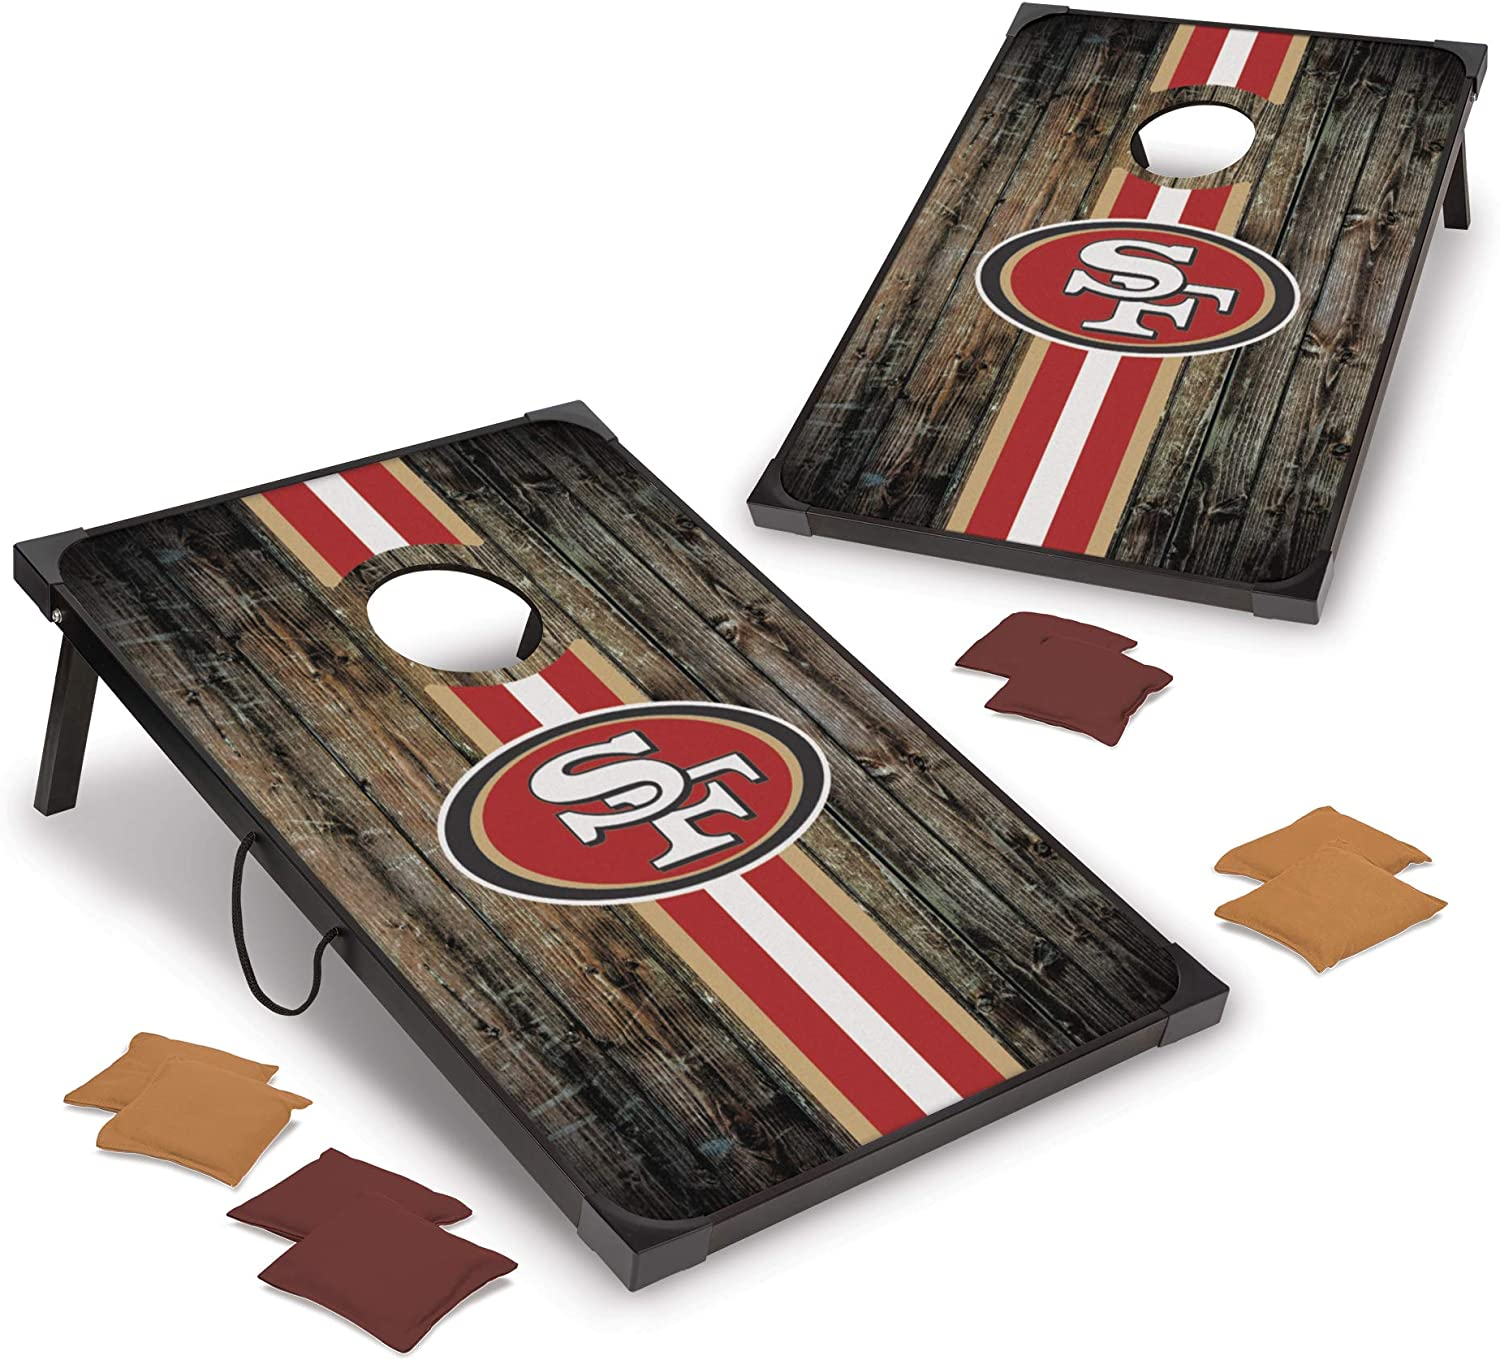 NFL Pro Football 2' x 3' MDF Wild Sp Wood Max 42% OFF Cornhole Deluxe Super-cheap Set by